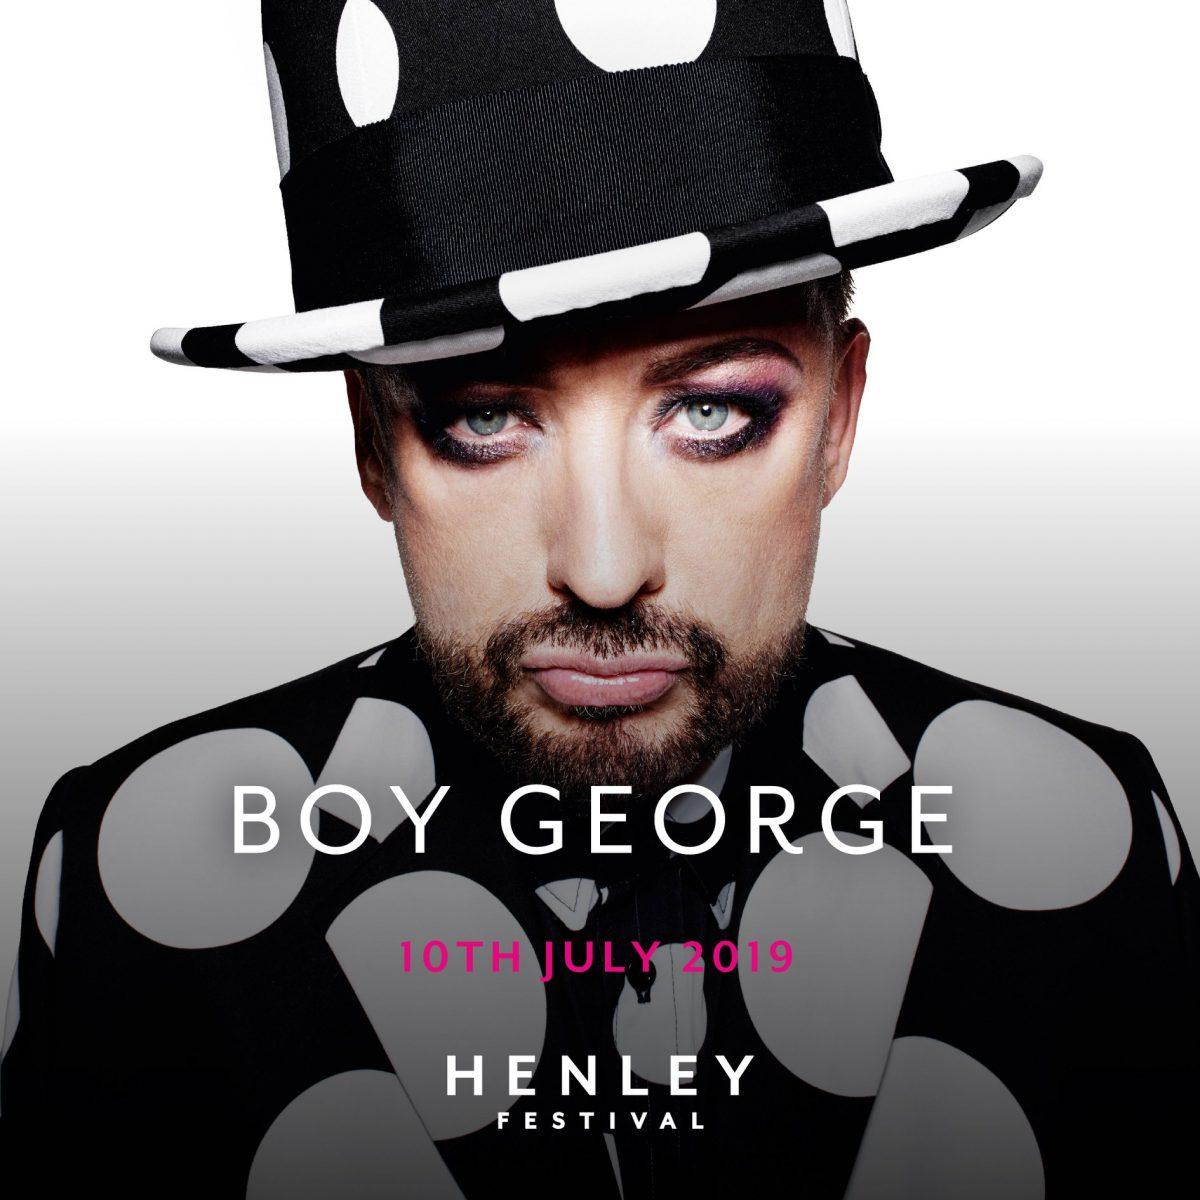 We can't wait to welcome the iconic Boy George to Henley Festival 2019!...